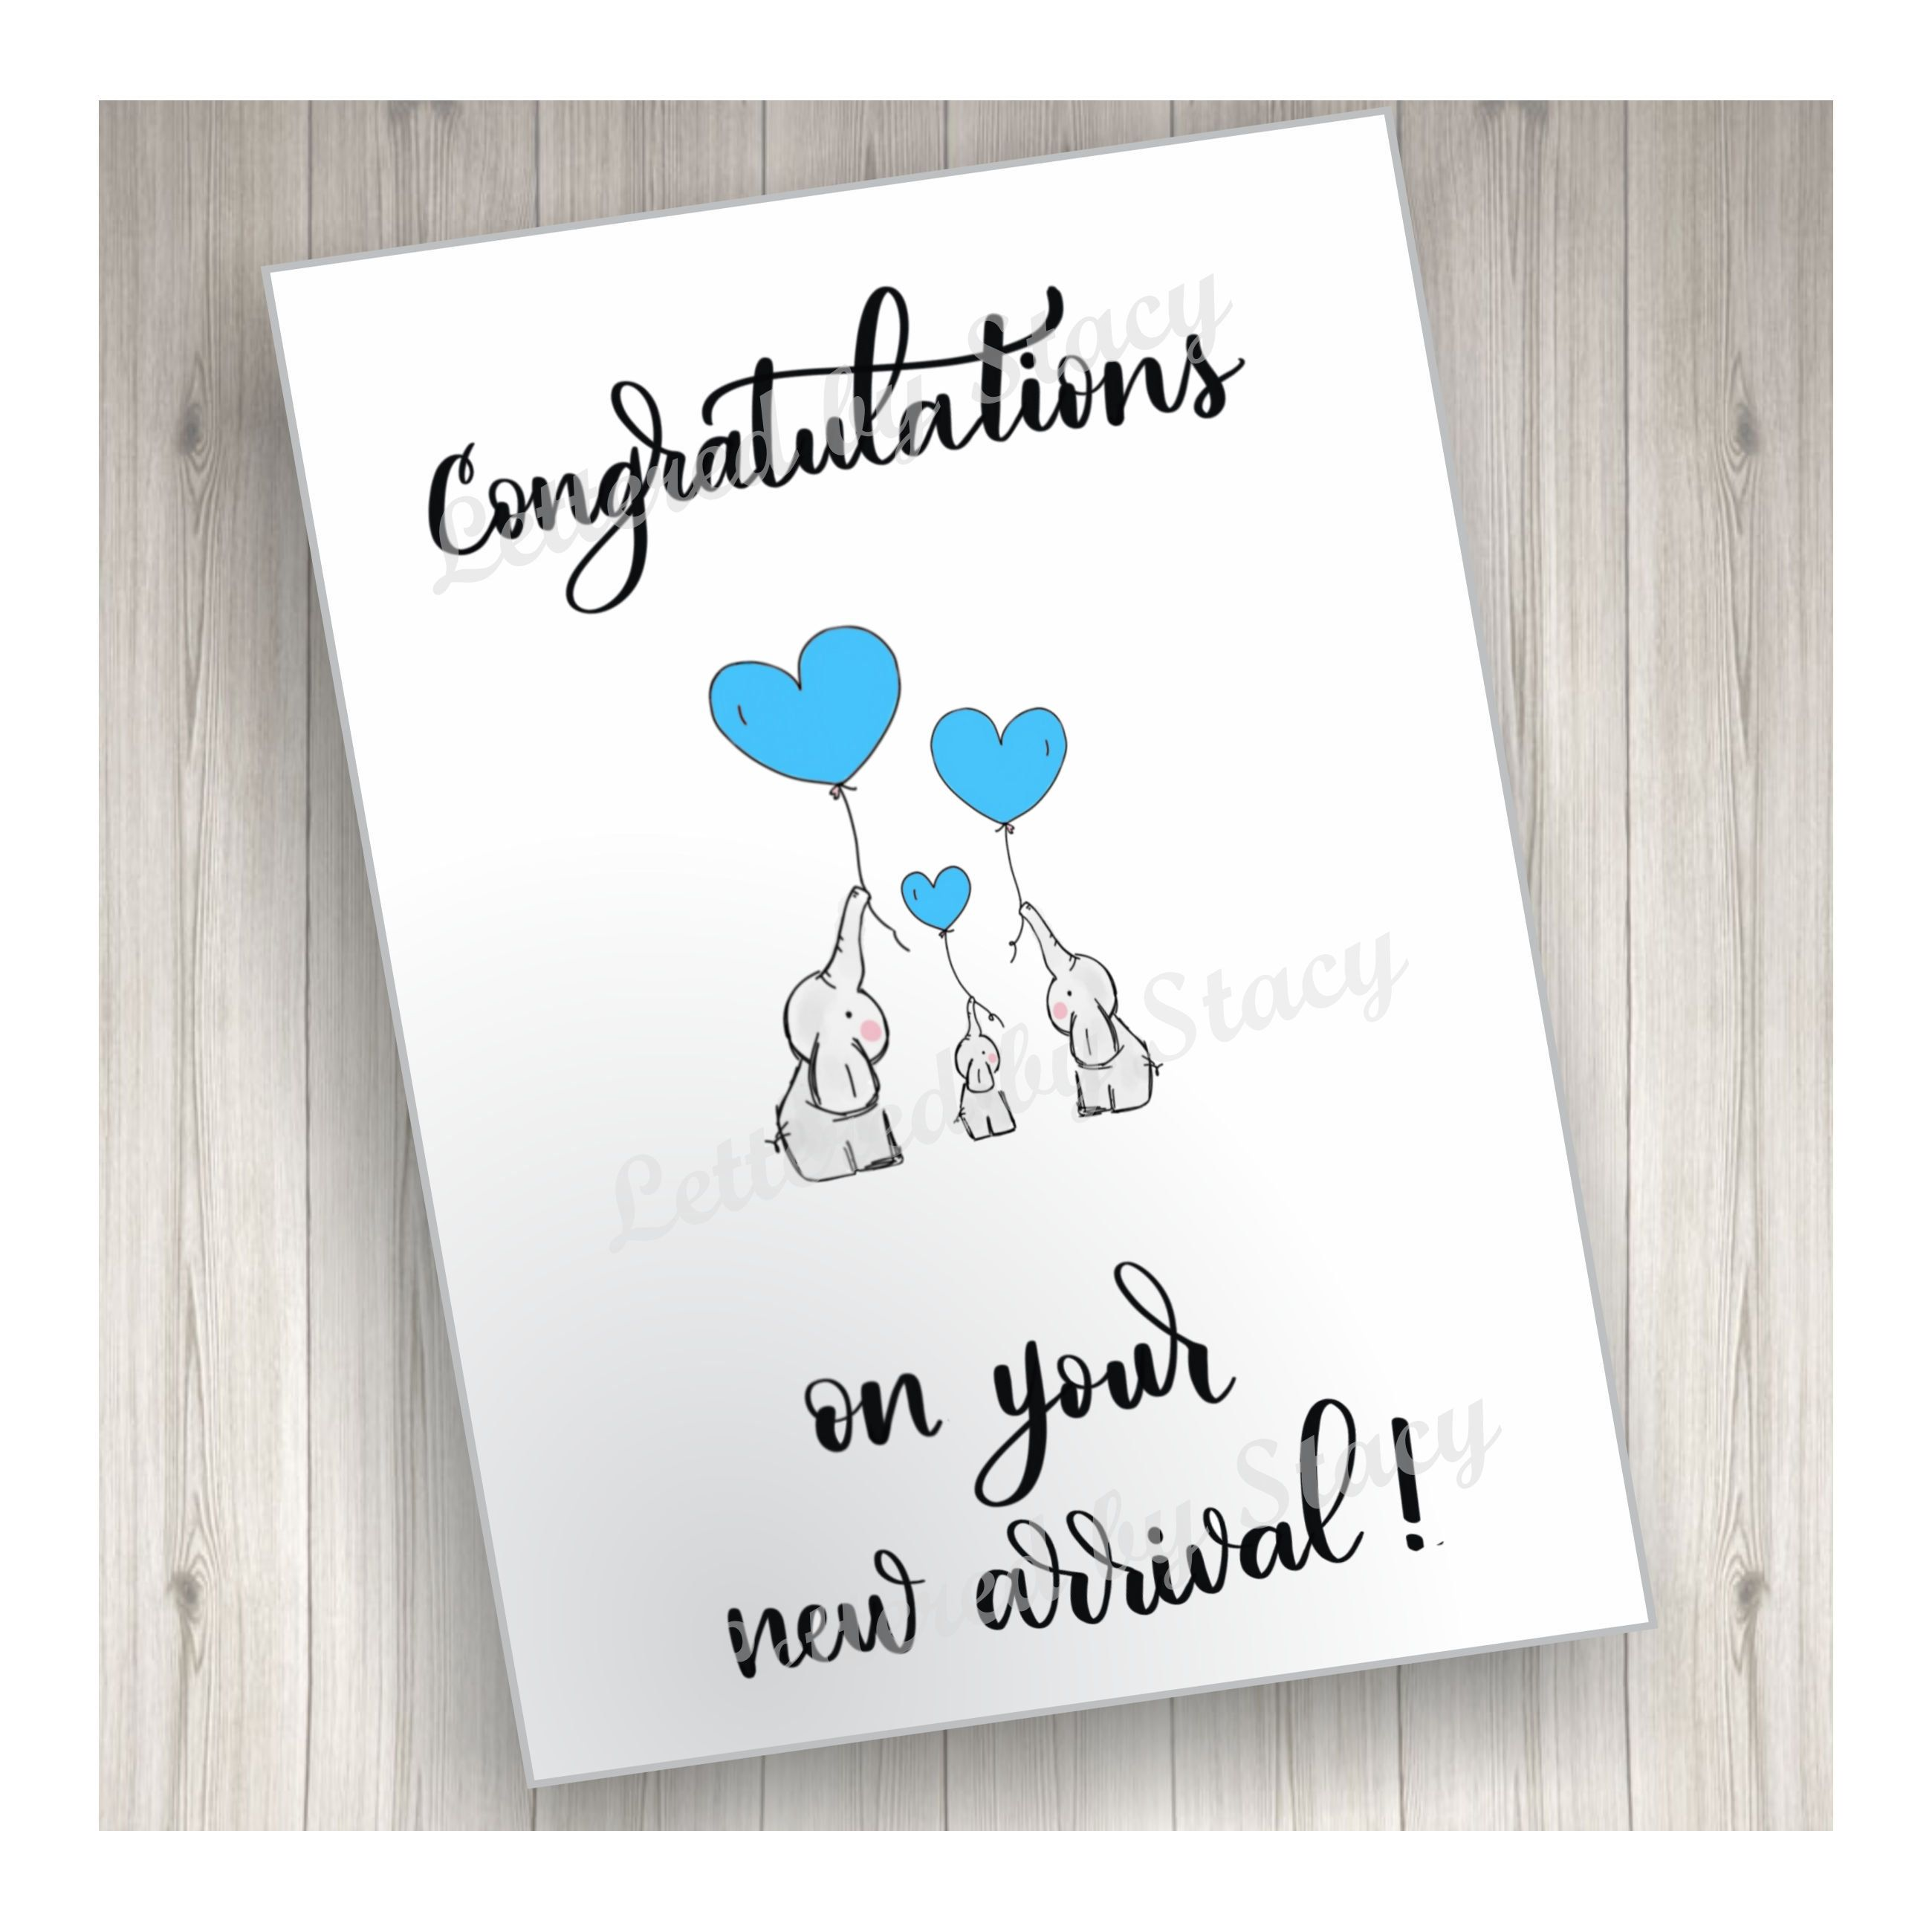 New Baby Card Congratulations On Your New Arrival With Etsy In 2021 Baby Cards New Baby Cards New Baby Products